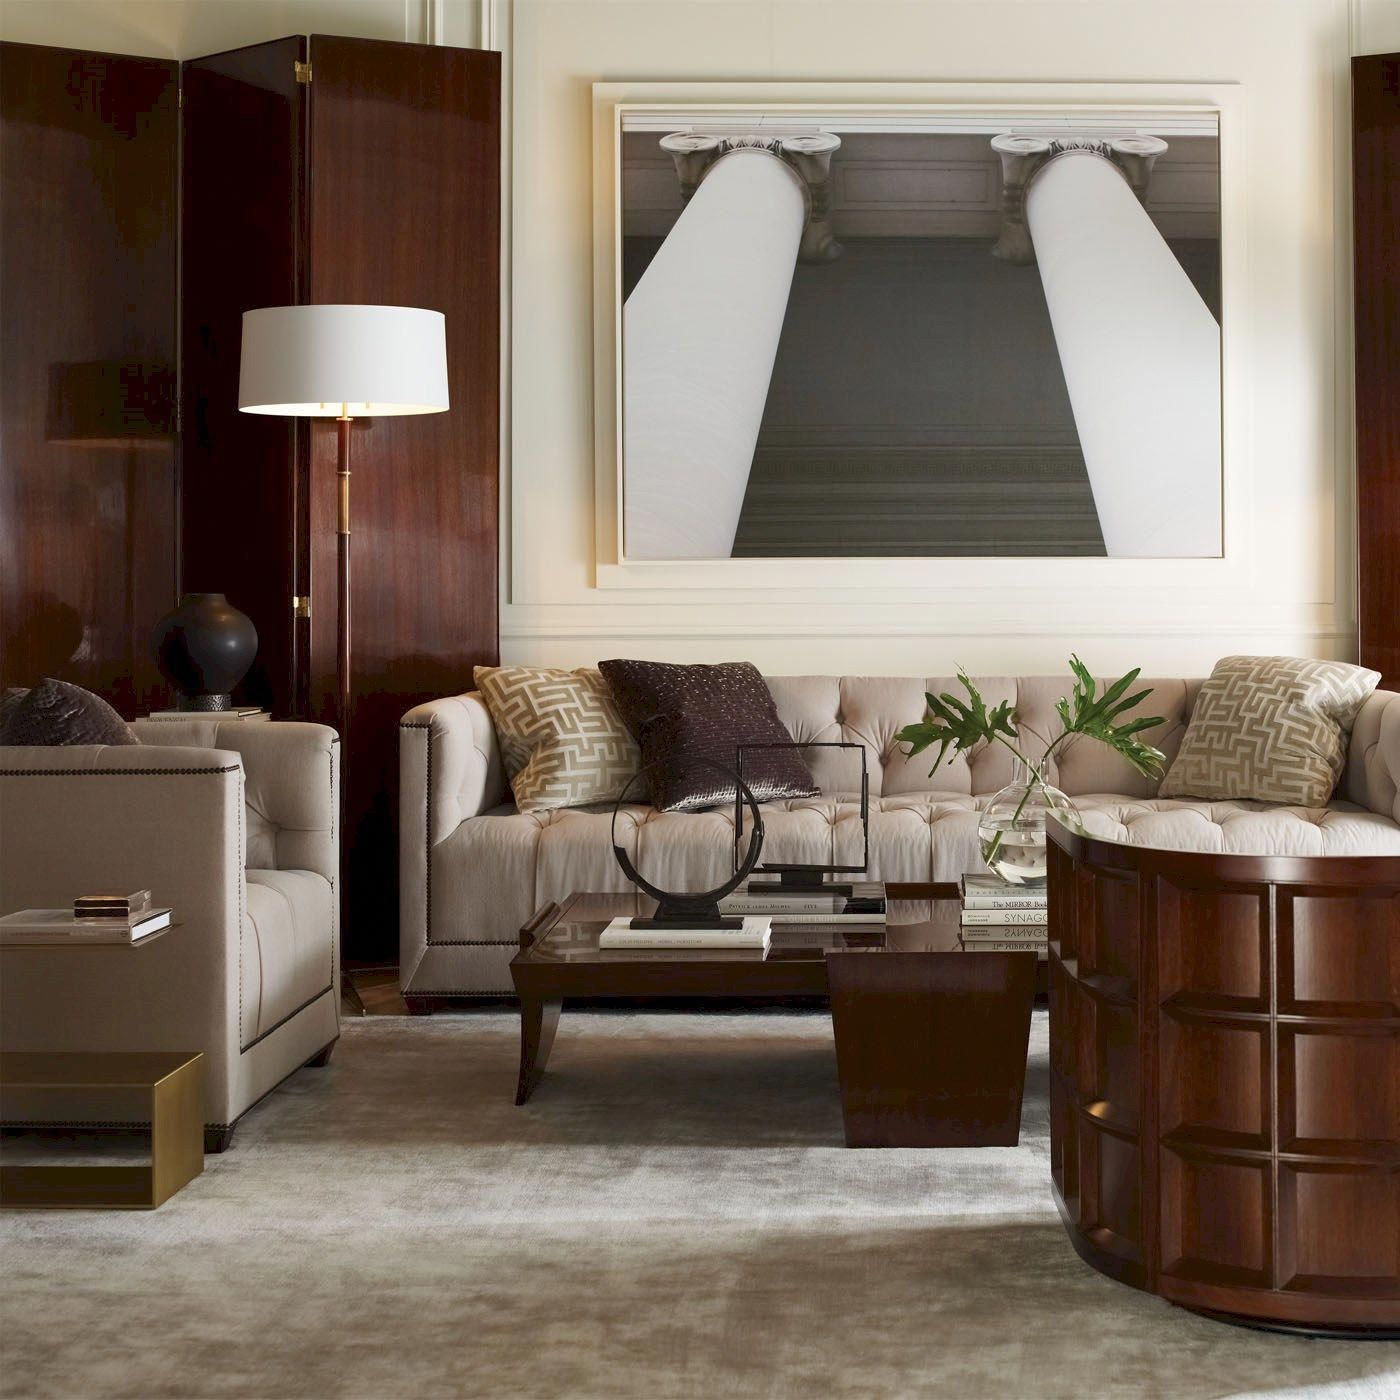 THE THOMAS PHEASANT COLLECTION - Baker Furniture, Suite 60 ...